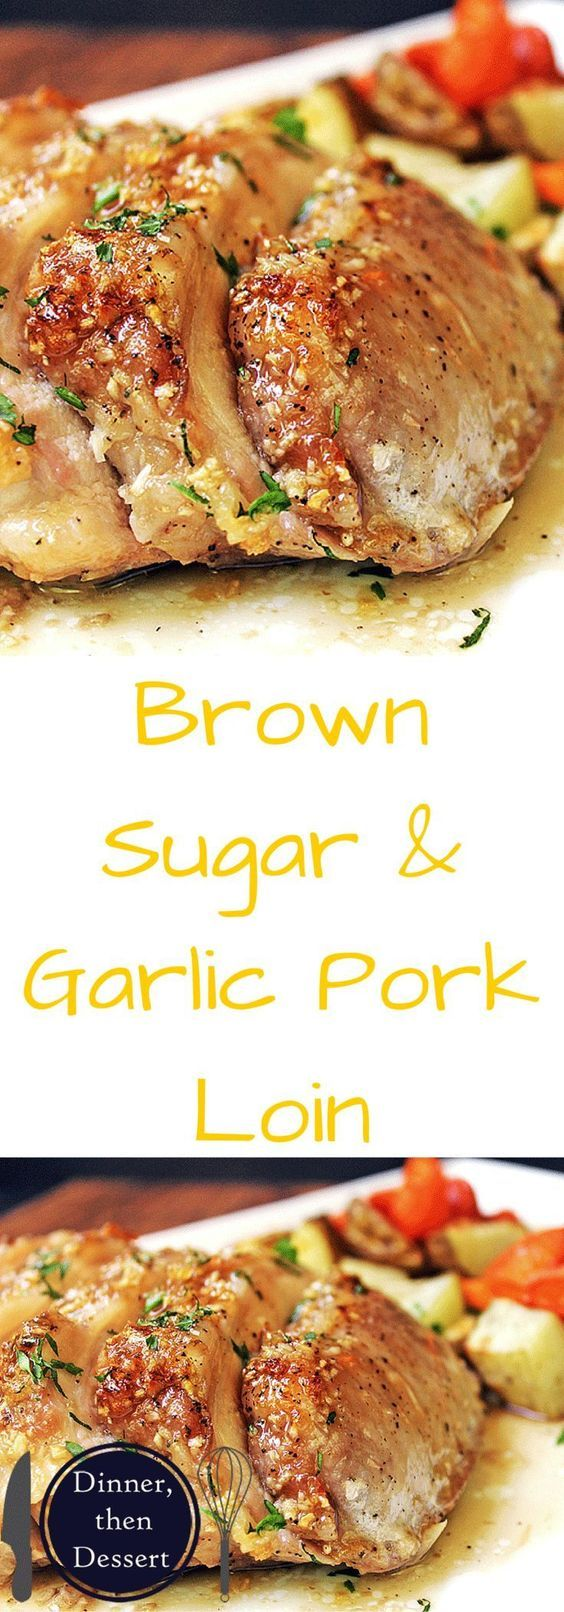 An easy meal, ready to roast in just a few minutes. Sticky and sweet with a punch of garlic, this pork loin is sure to be a huge hit with your family. Serve it up with some roasted carrots and potatoes on the side for a healthy balanced meal that is ready: